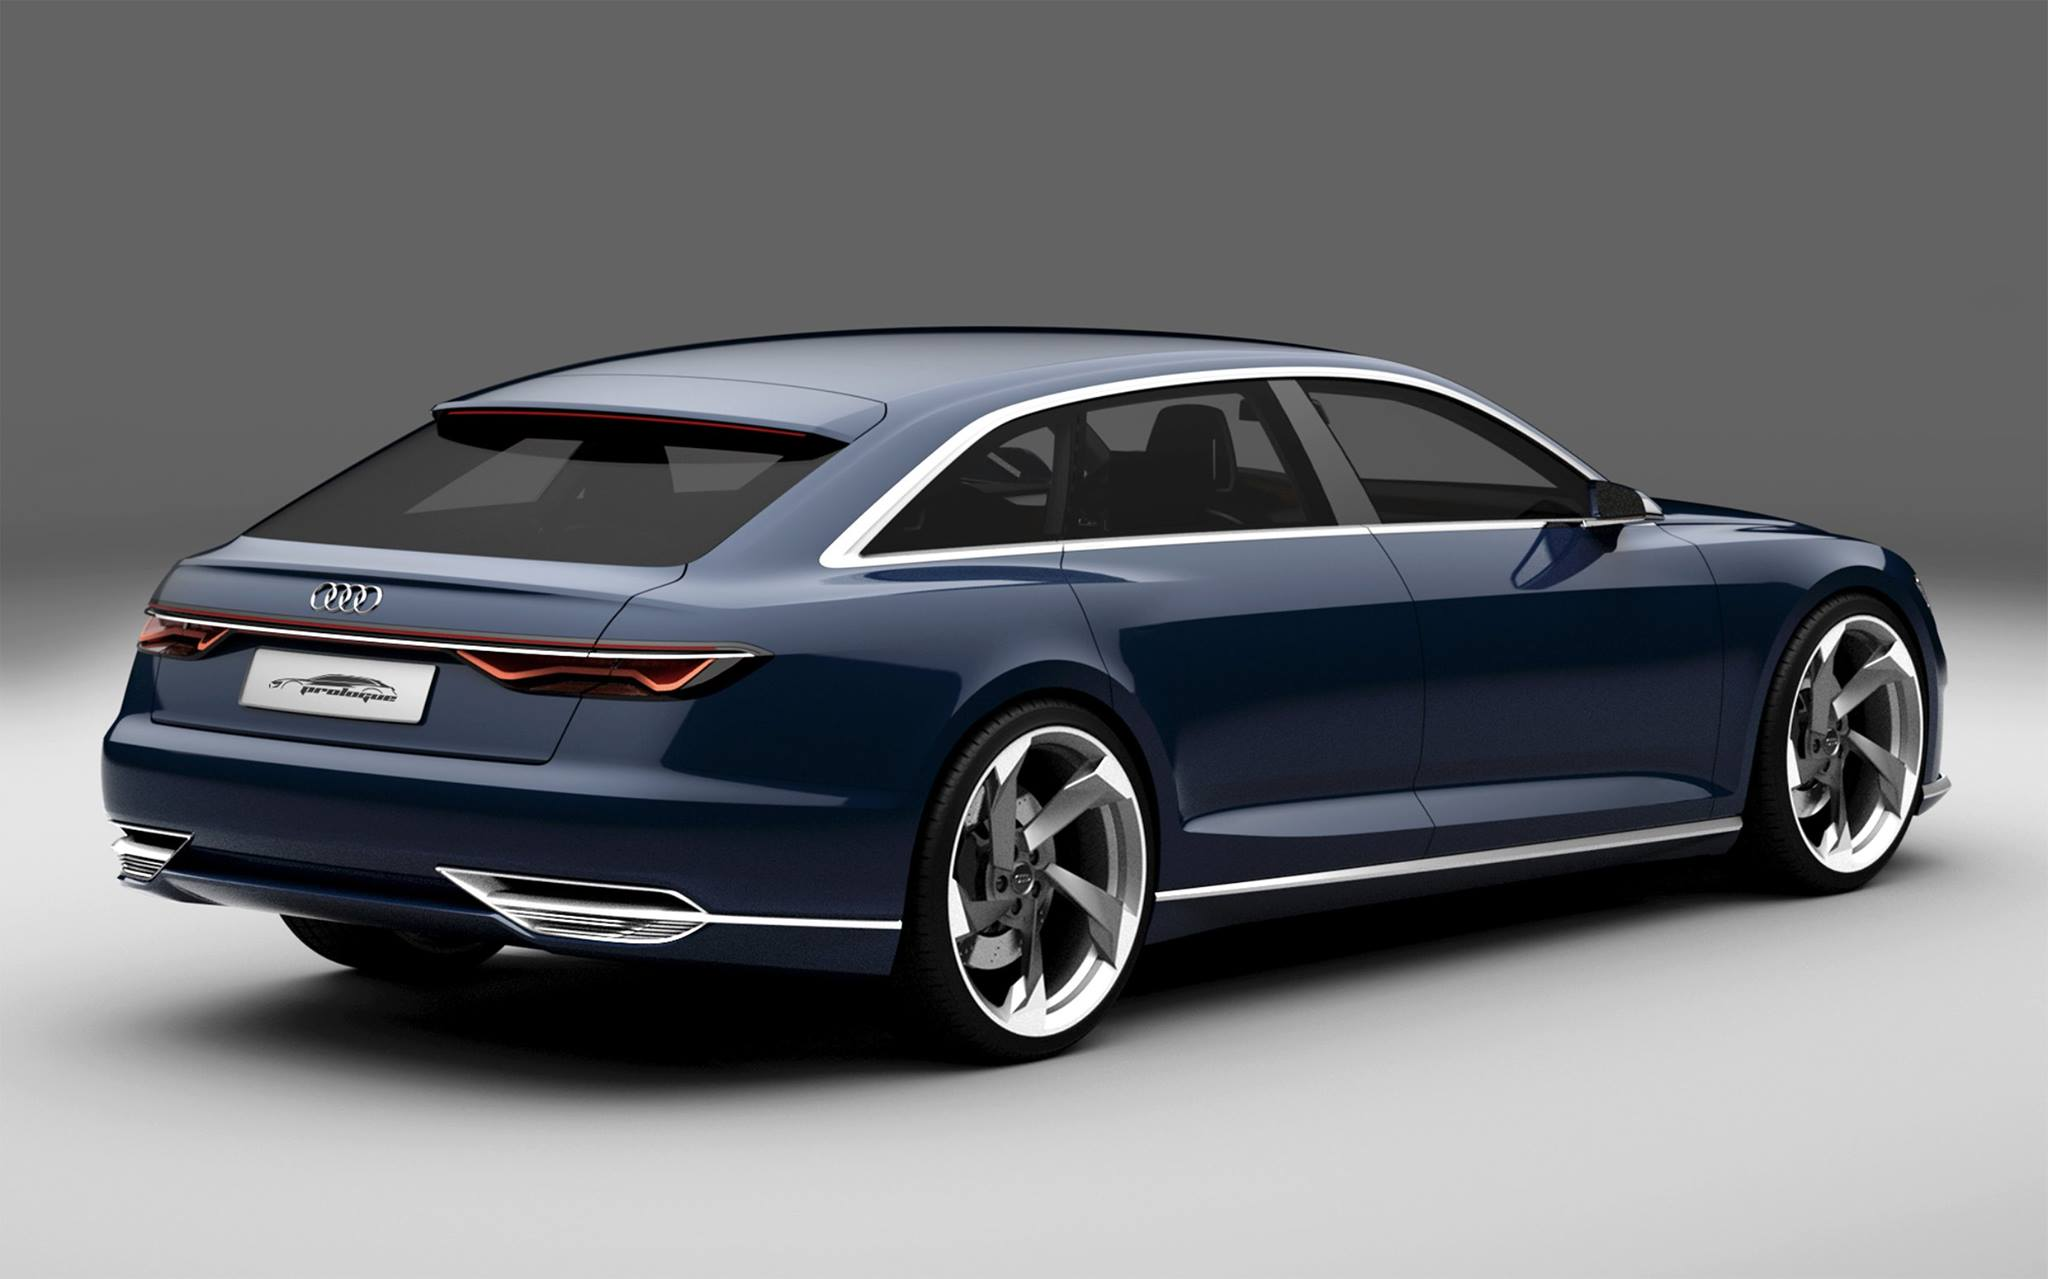 audi prologue avant concept is now official for geneva 2015 autoevolution. Black Bedroom Furniture Sets. Home Design Ideas